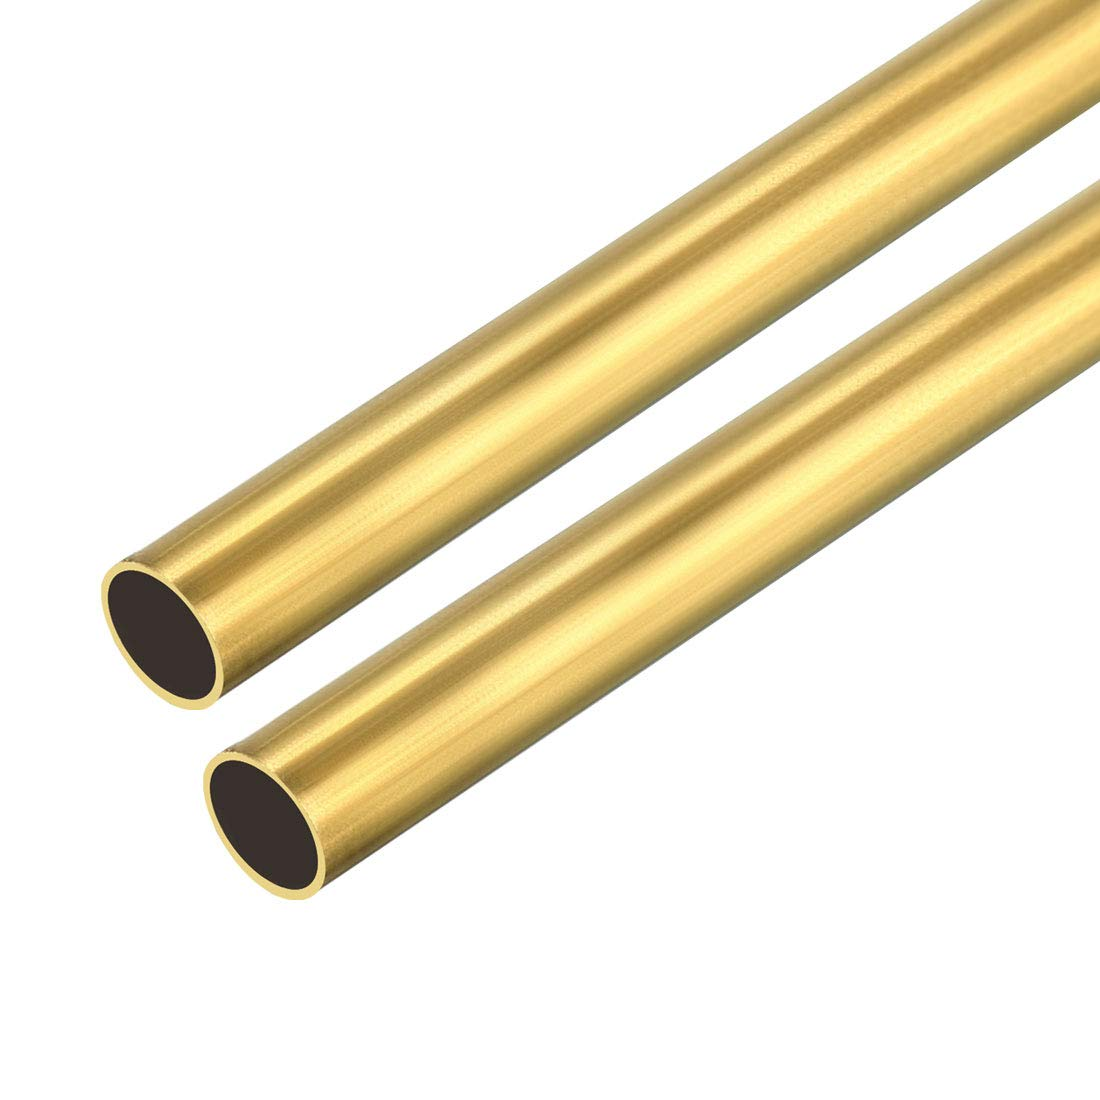 uxcell 2PCS 4mm x 5mm x 500mm Brass Pipe Tube Round Bar Rod for RC Boat